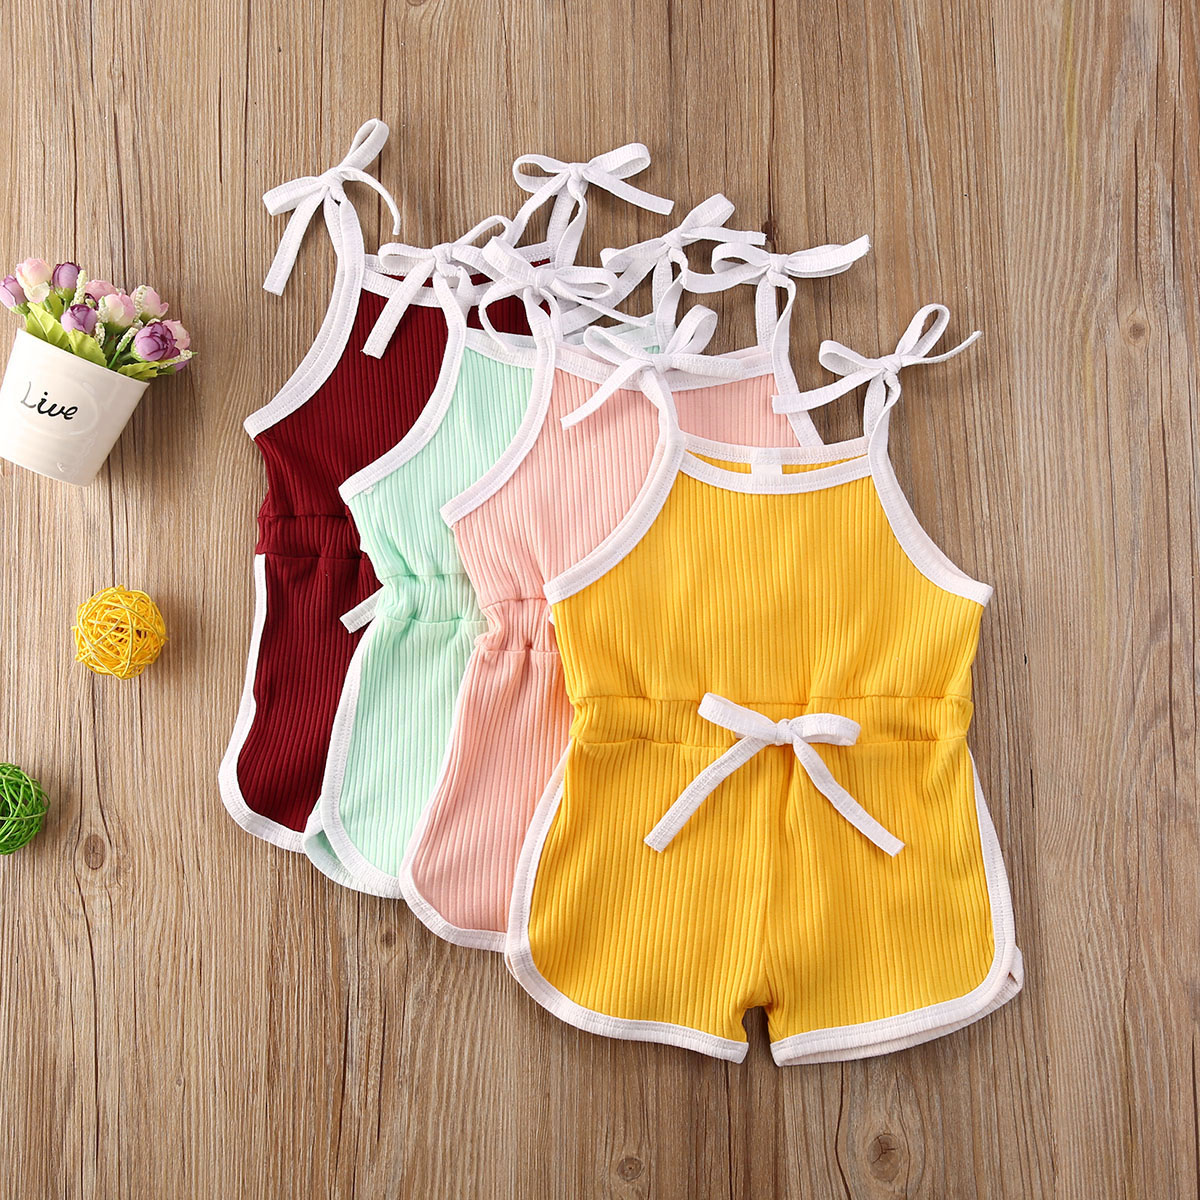 Summer Infant Baby Girls 12M-6T Rompers Overalls Solid Sleeveless Belt Jumpsuits Lovely Clothes 4 Colors